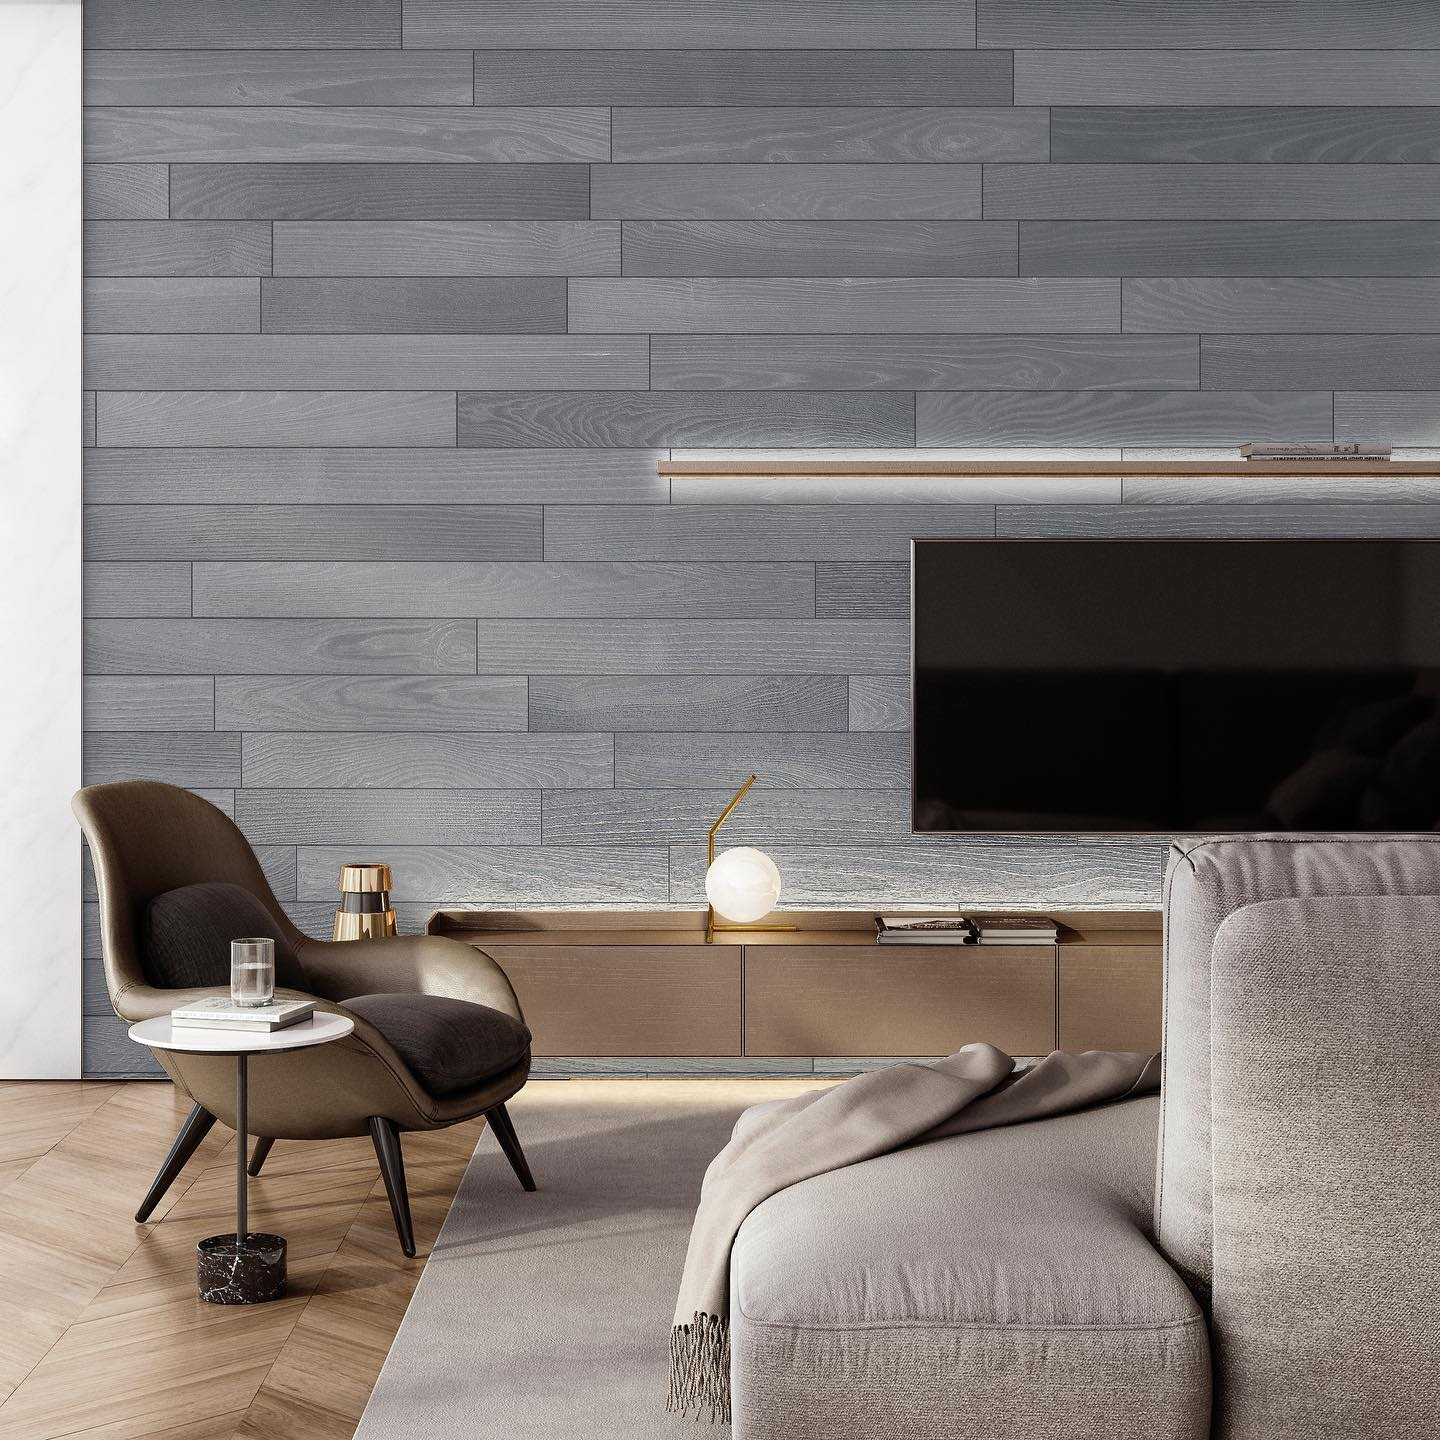 Wood Accent Wall Ideas for Living Room -mylivingdecor